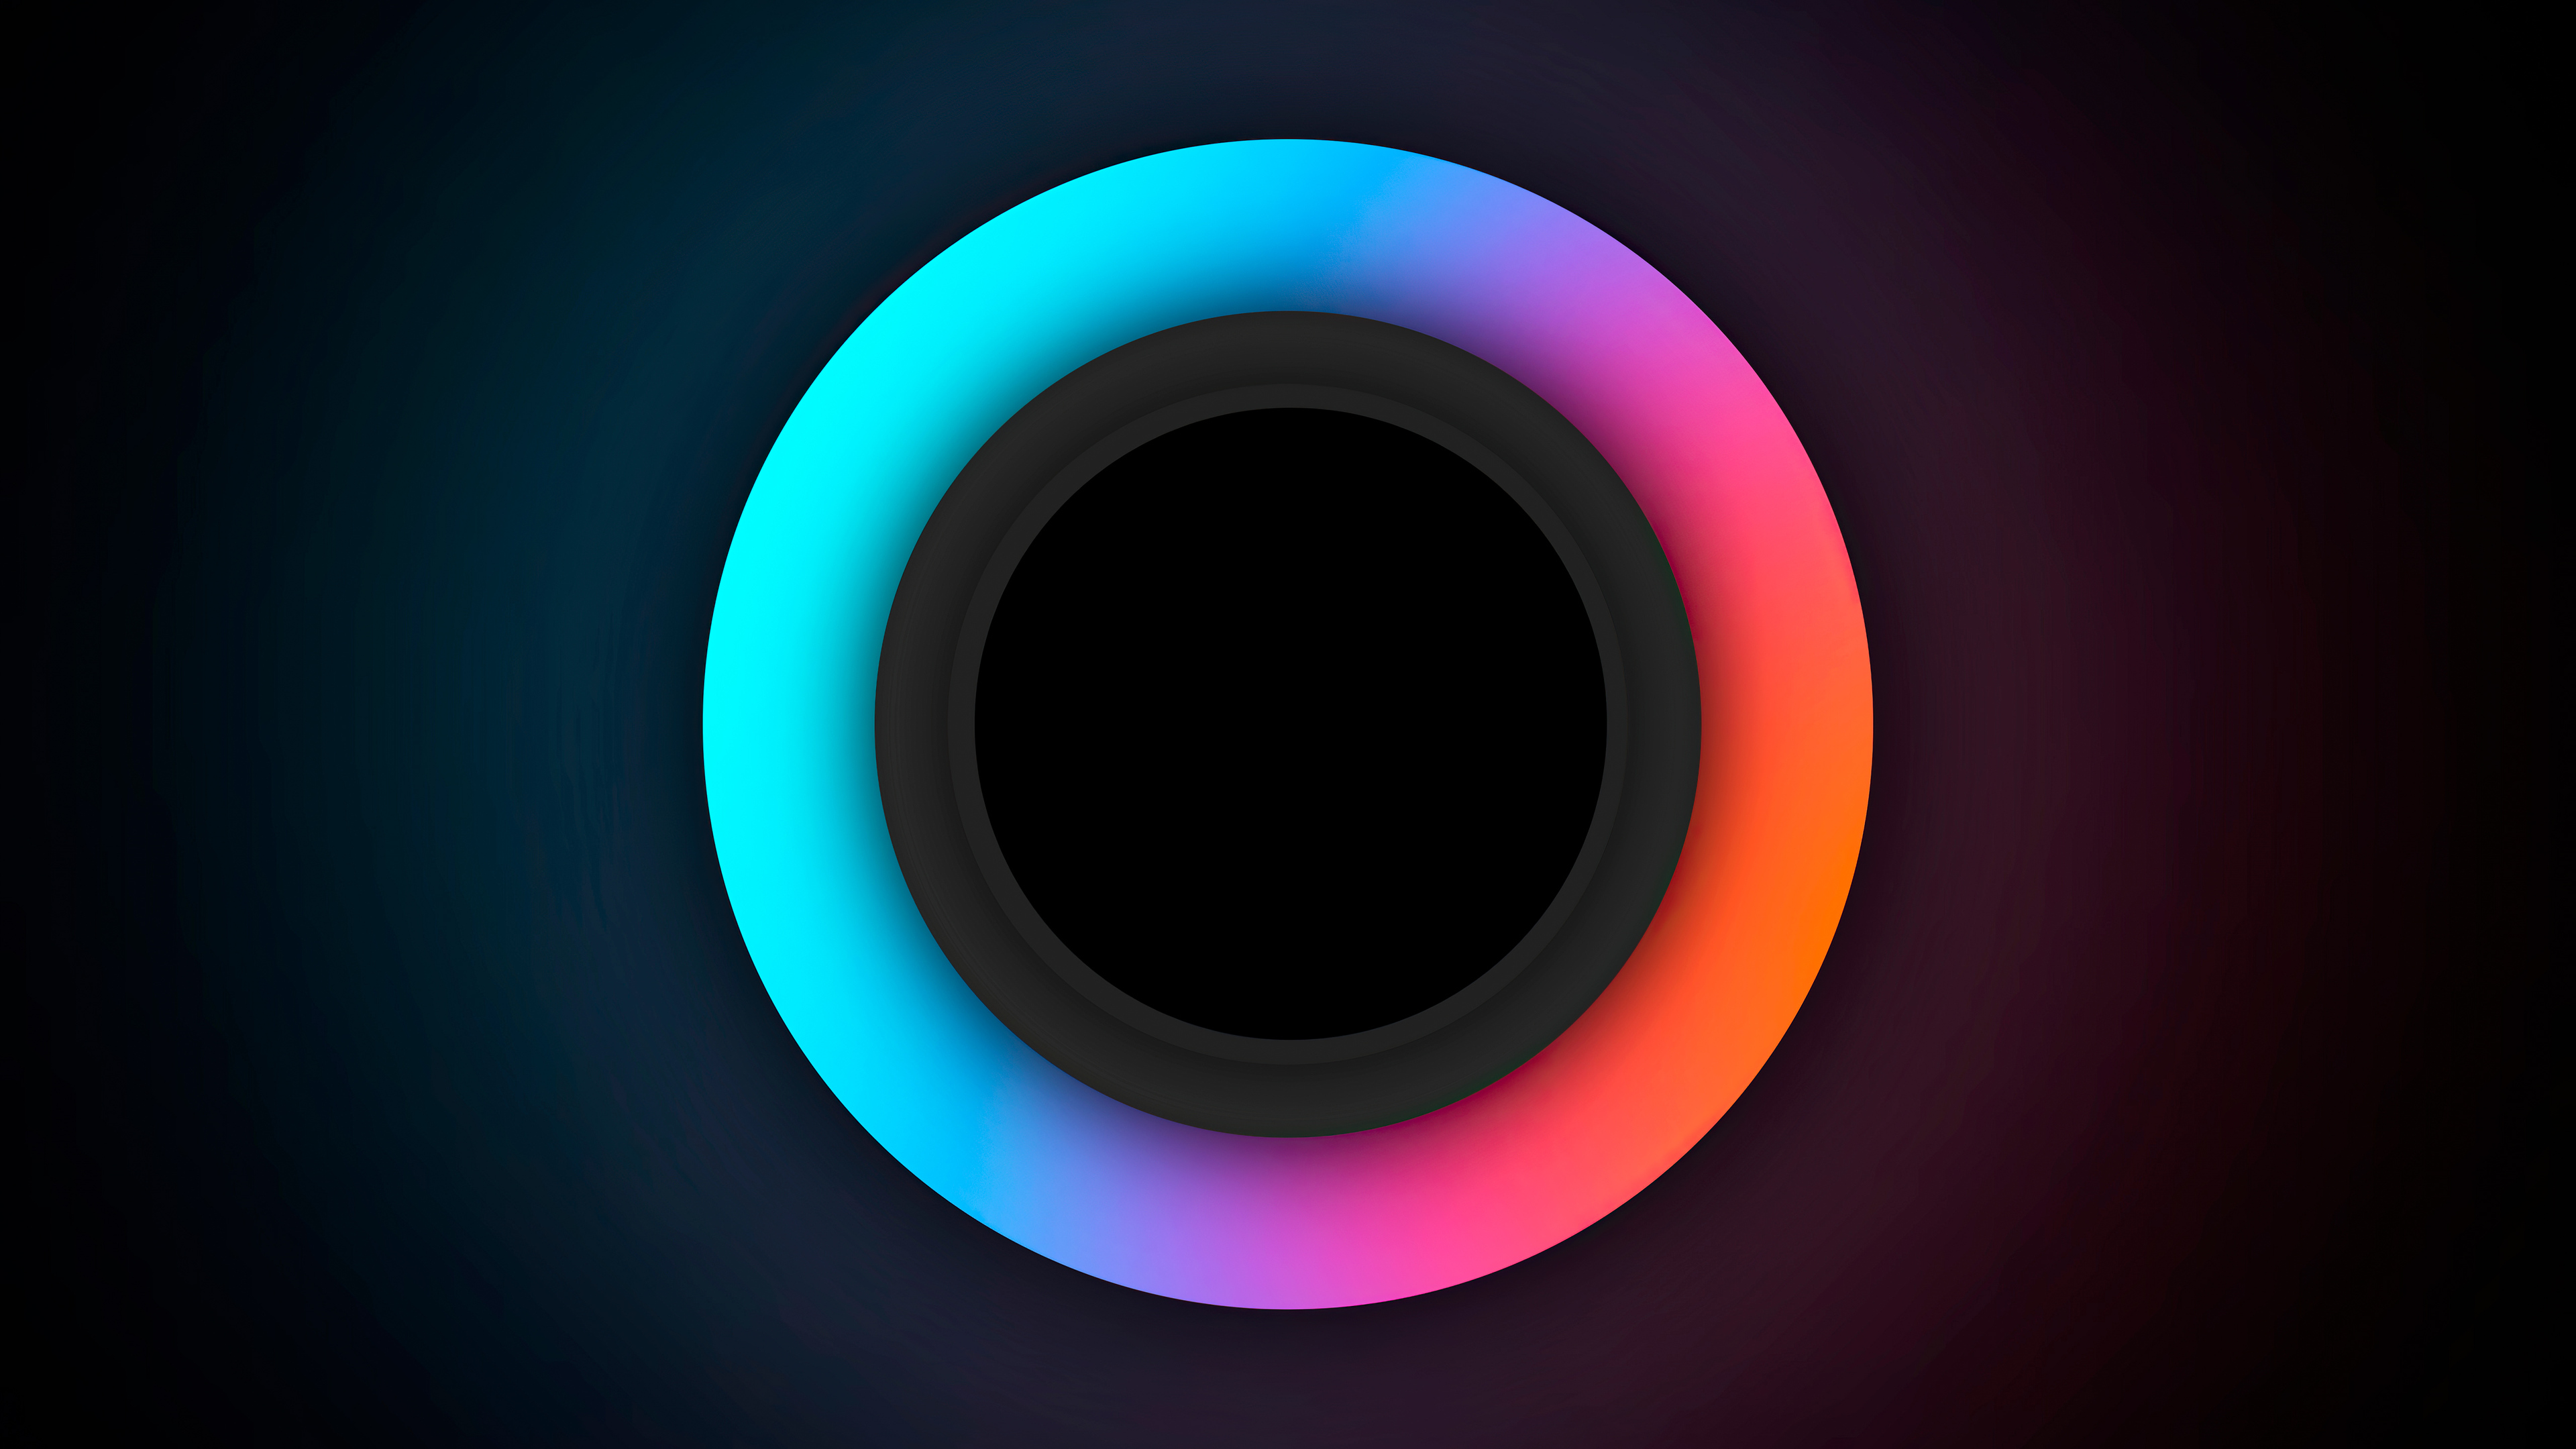 glowing-circle-5k-ql.jpg